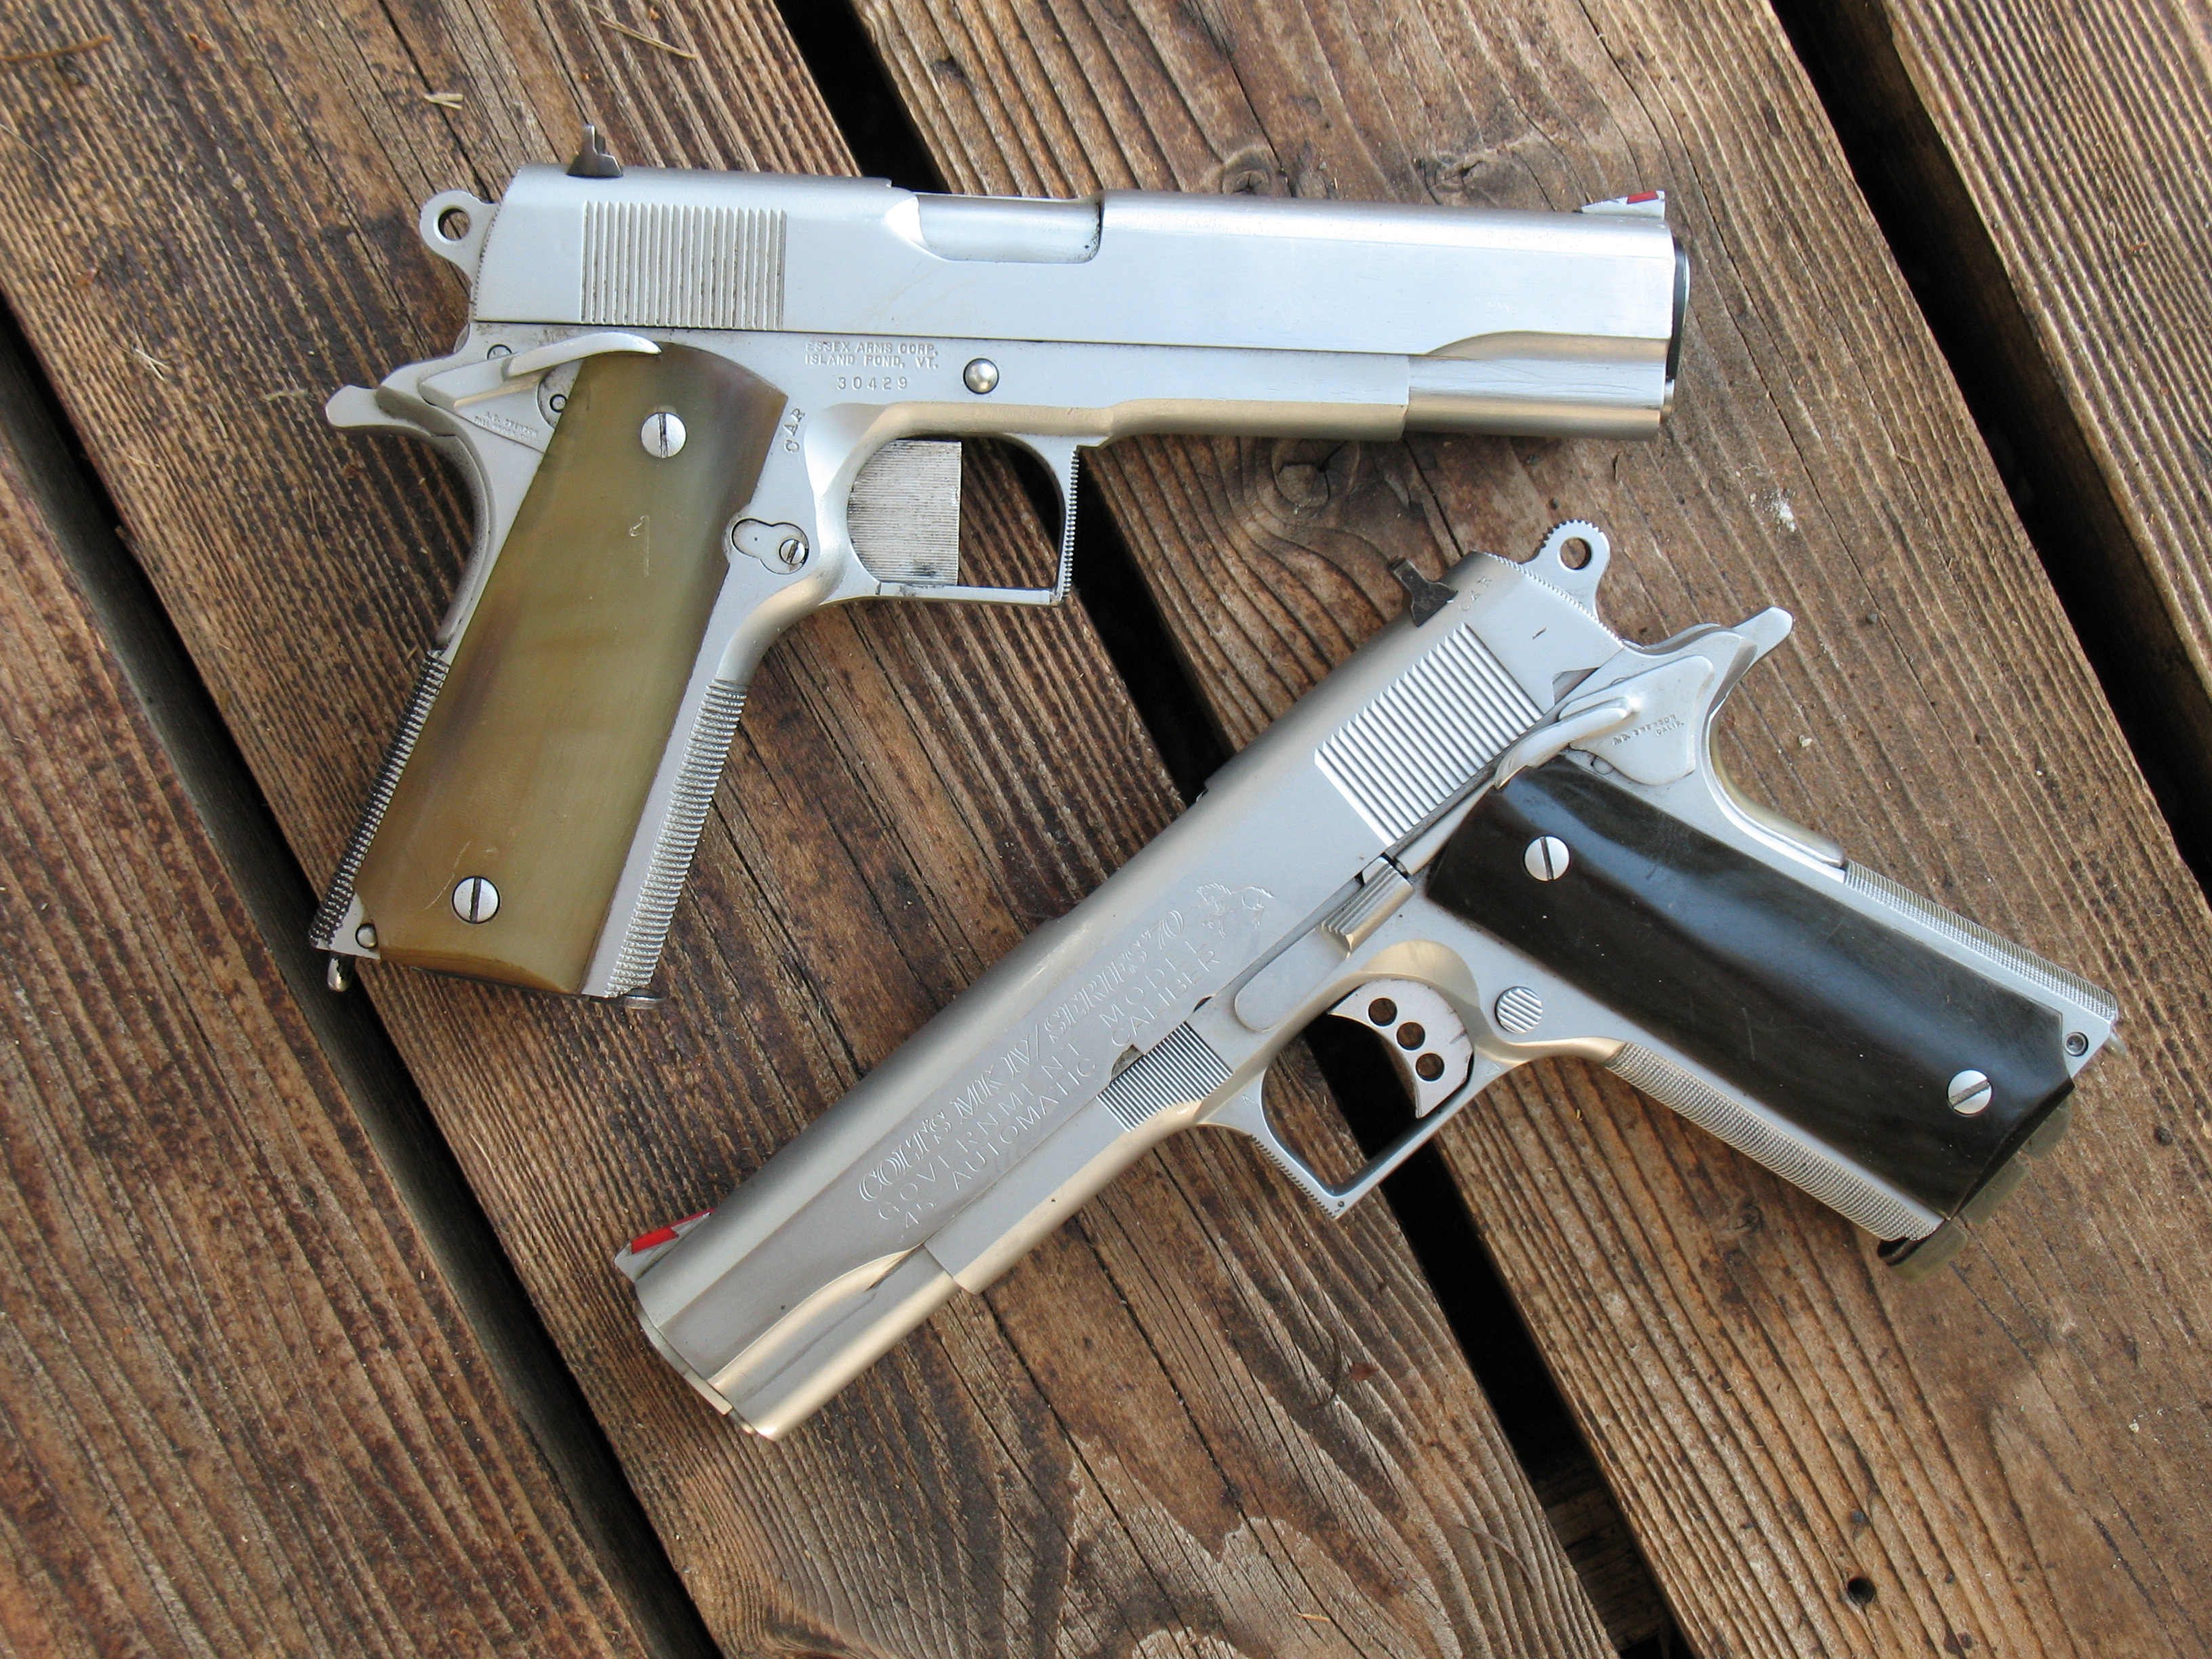 Share some Colt love - a picture thread-img_2026.jpg